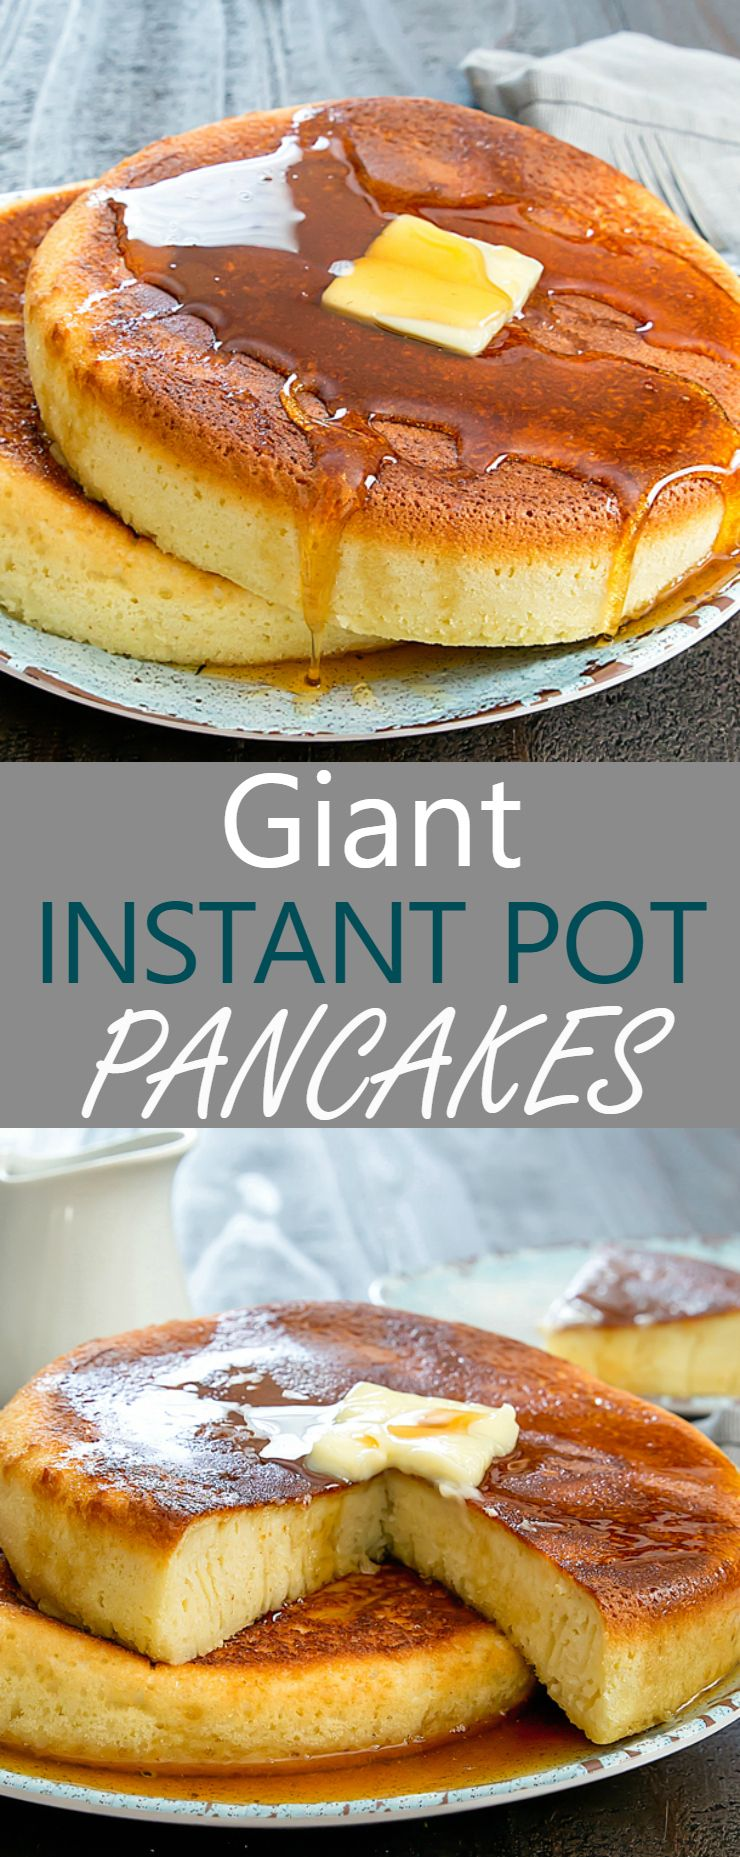 giant instant pot pancake recette my recipe posts pinterest instant pot cr pe et gaufres. Black Bedroom Furniture Sets. Home Design Ideas